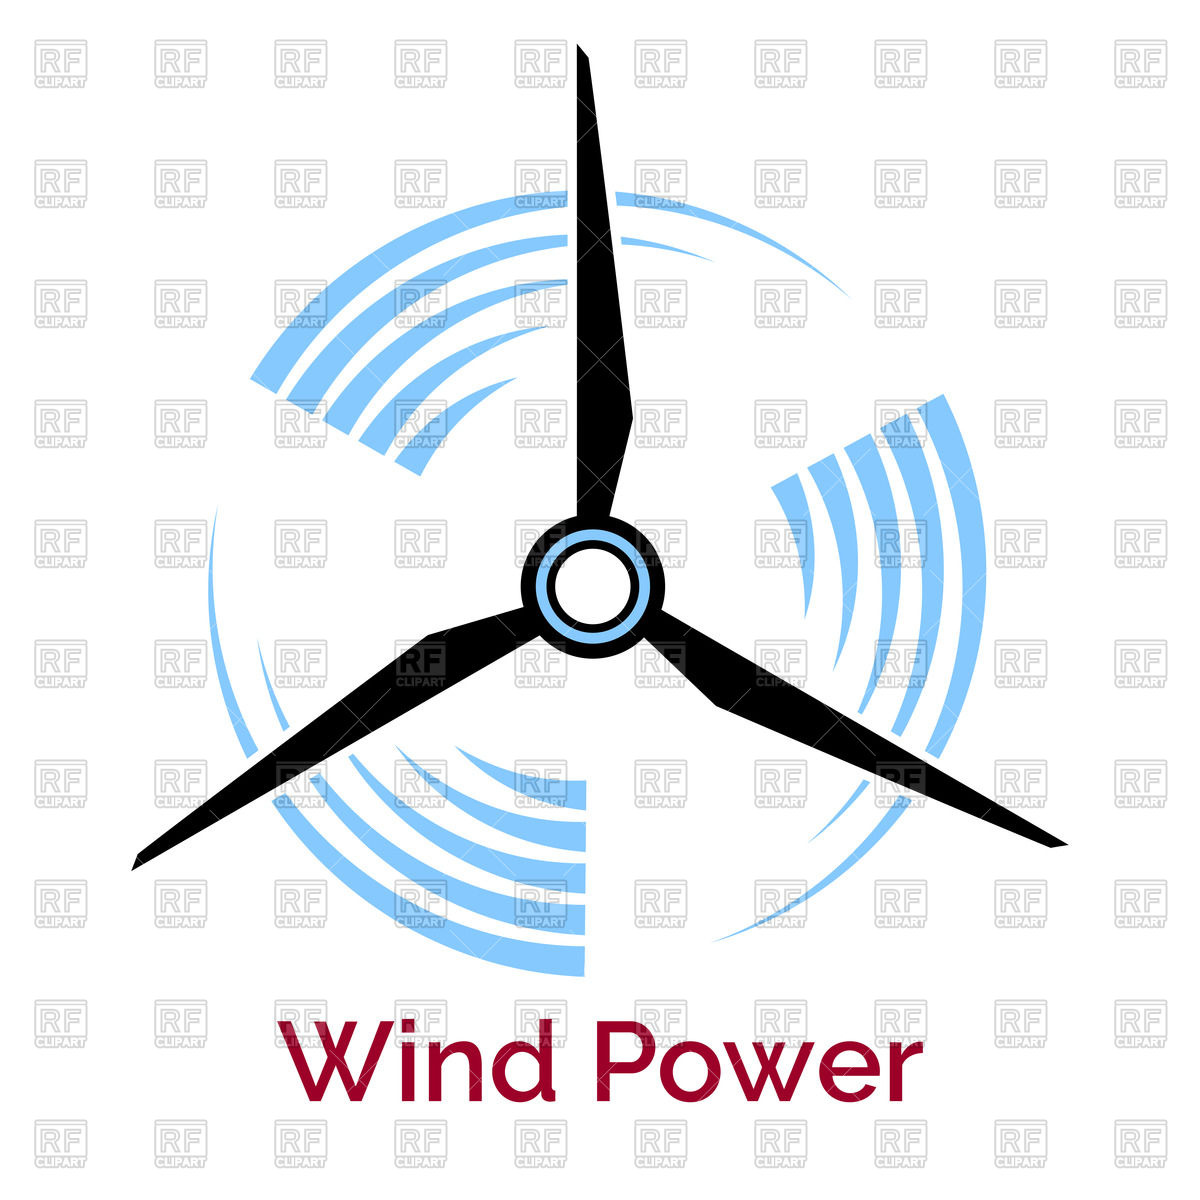 1200x1200 Company Logo With Wind Turbine And Slogan Wind Power Vector